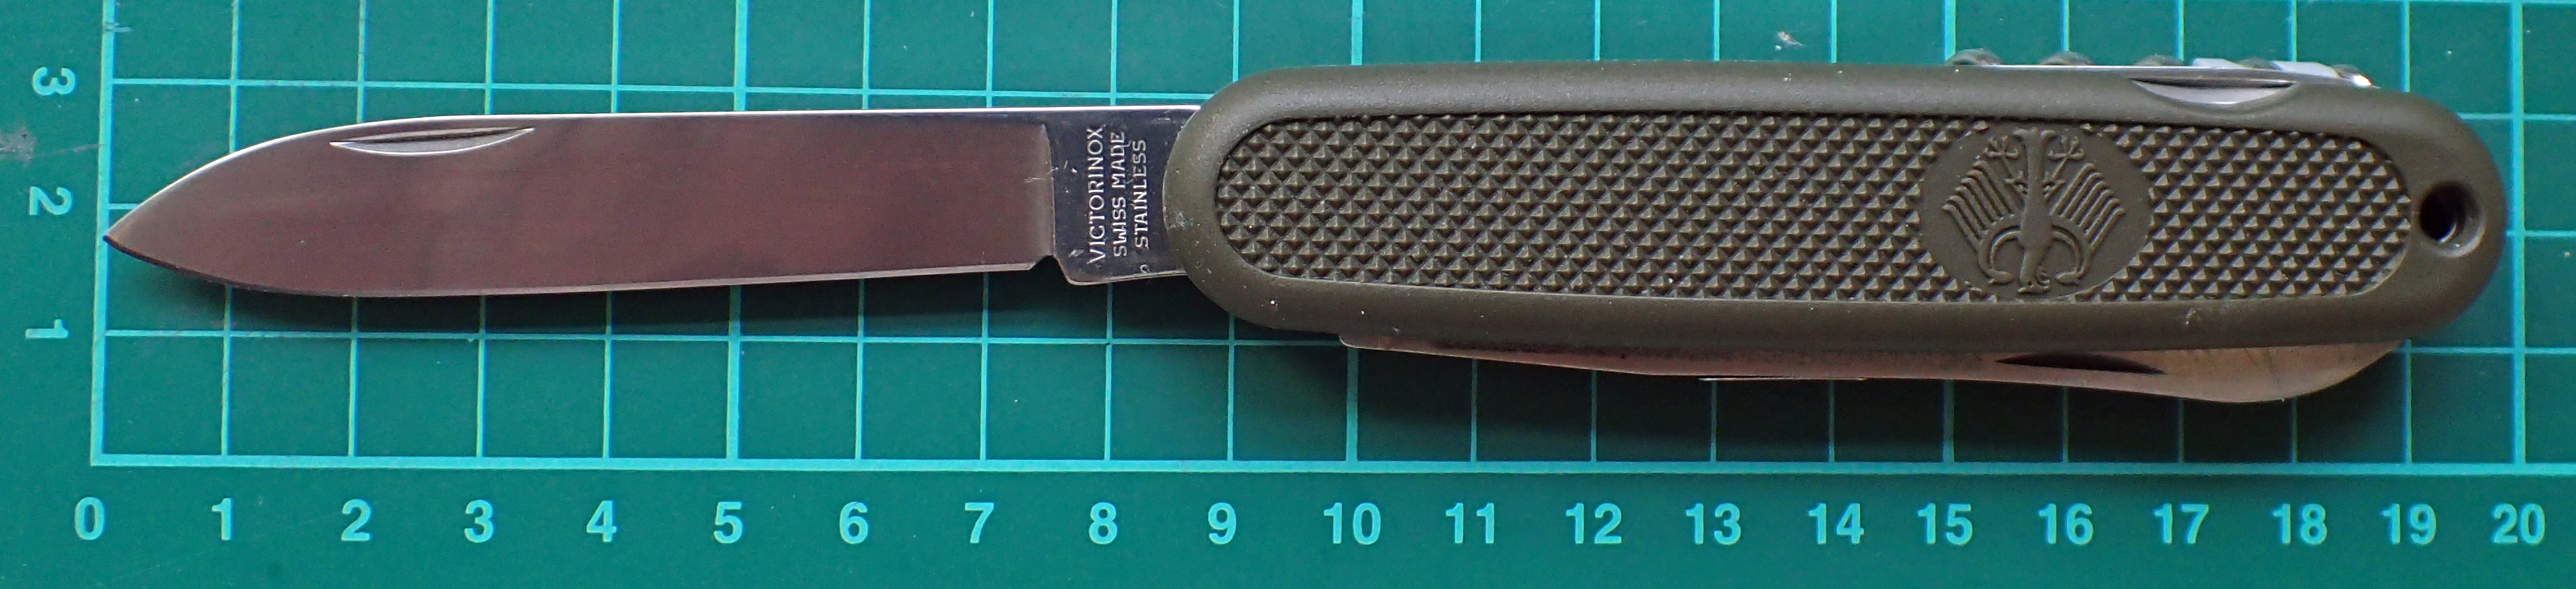 Heavy duty folding blade with lots of belly found on the original 108mm German Army Knife